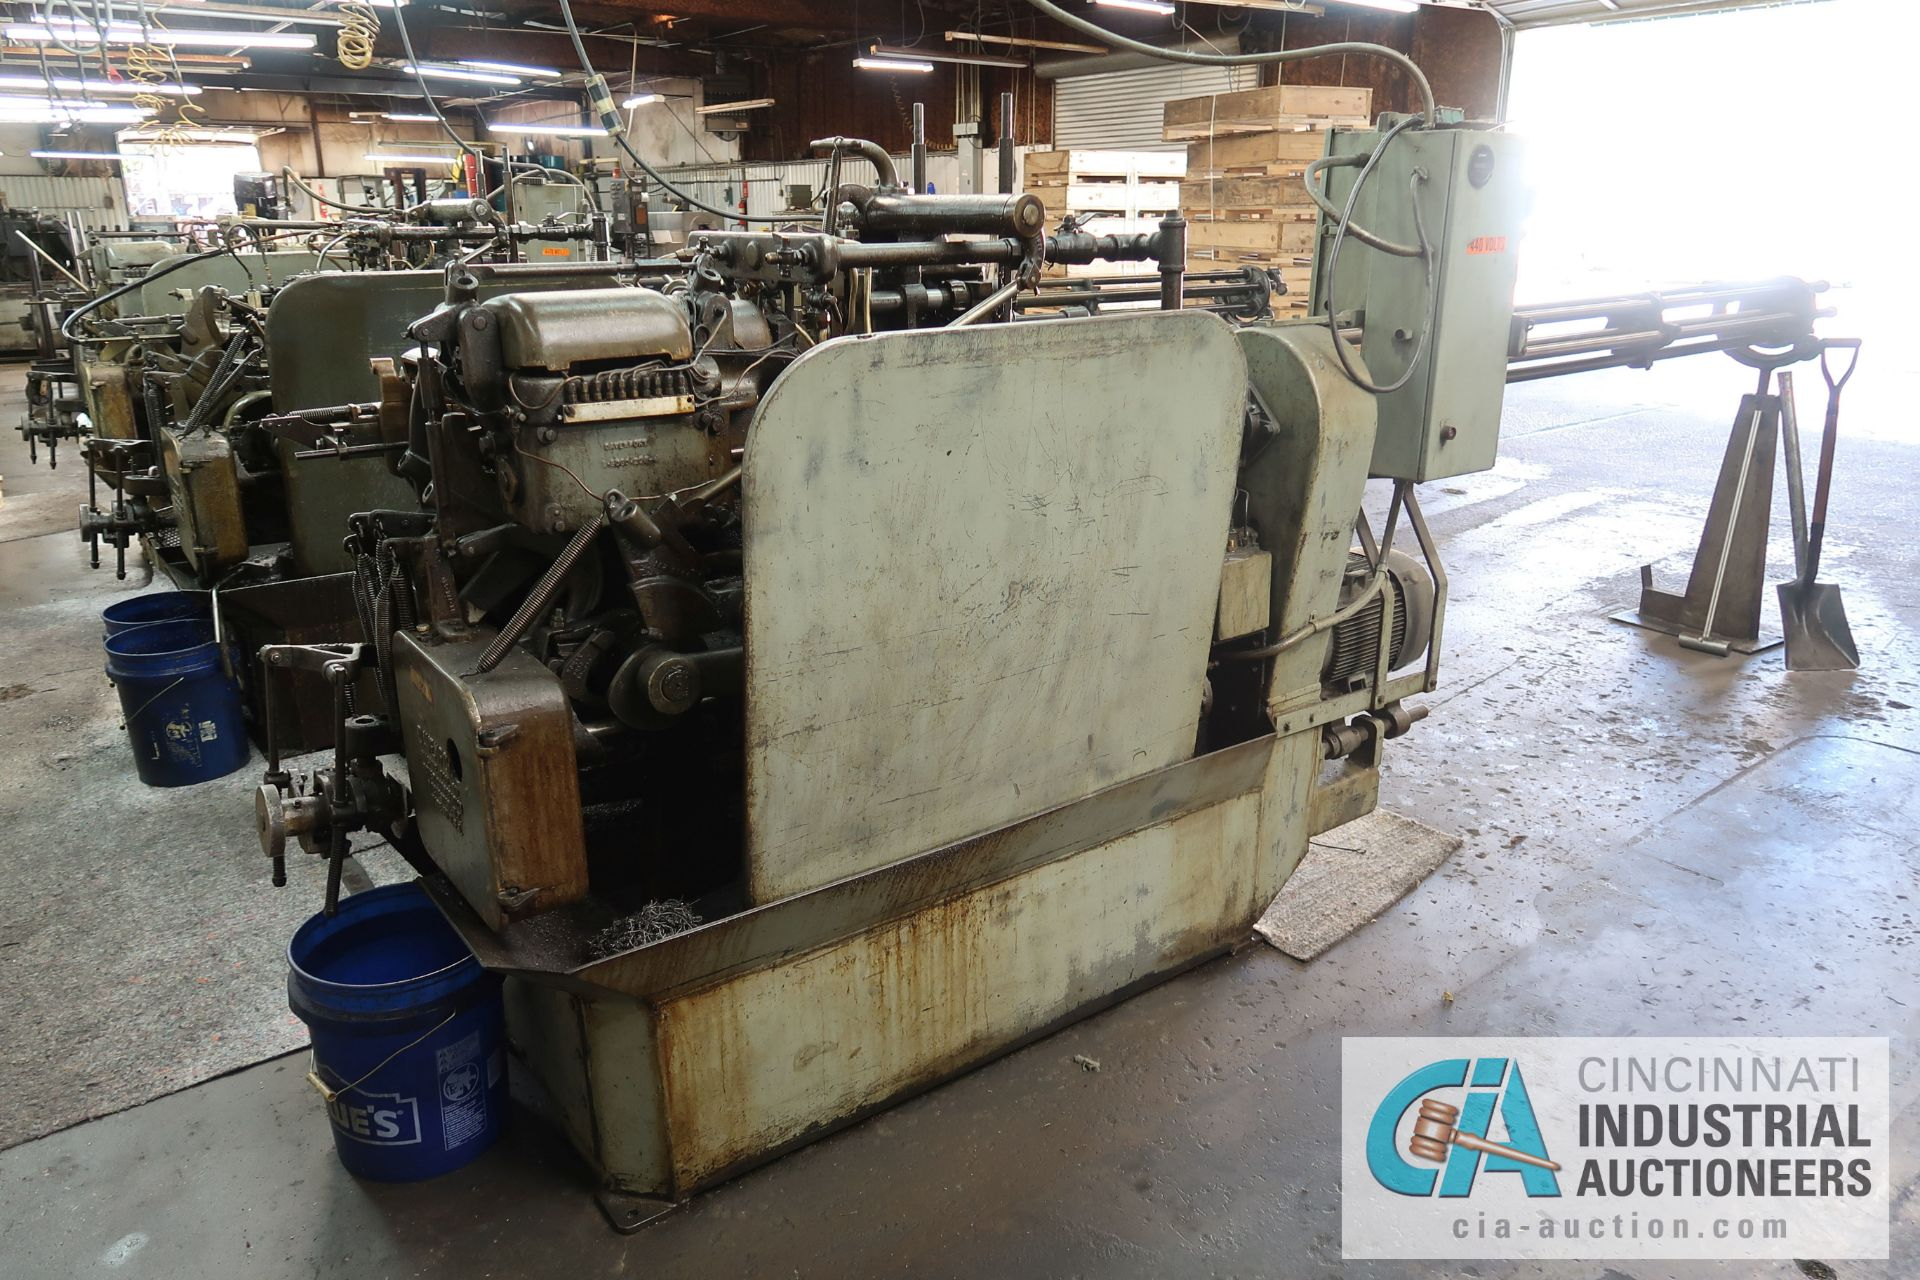 """3/4"""" DAVENPORT 5-SPINDLE SCREW MACHINE; S/N 110012 (NEW 11-1981), WITH THREAD CLUTCH, PICK OFF, - Image 2 of 3"""